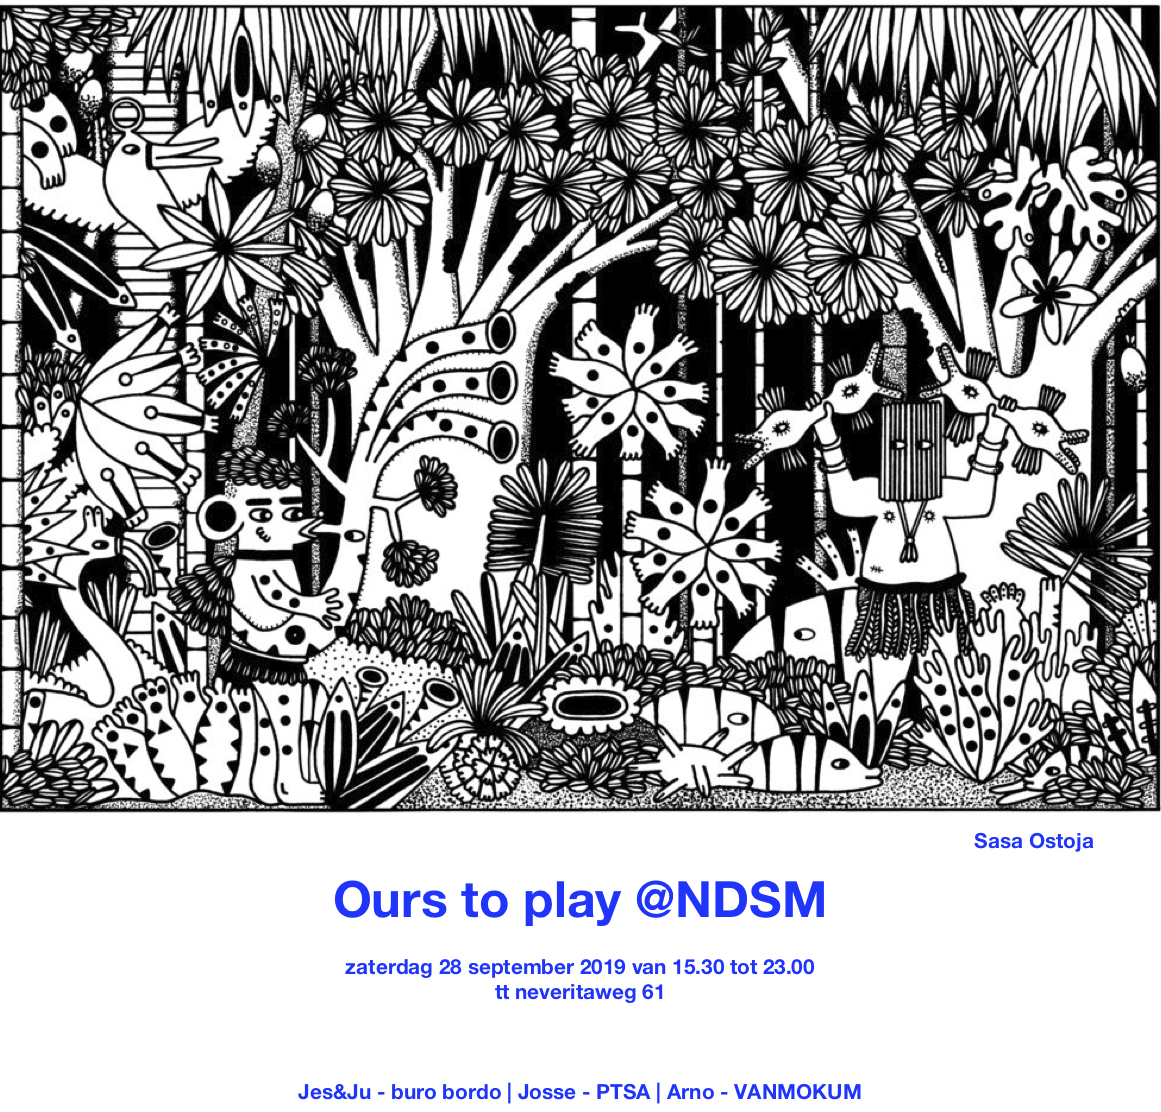 Ours to Play @NDSM